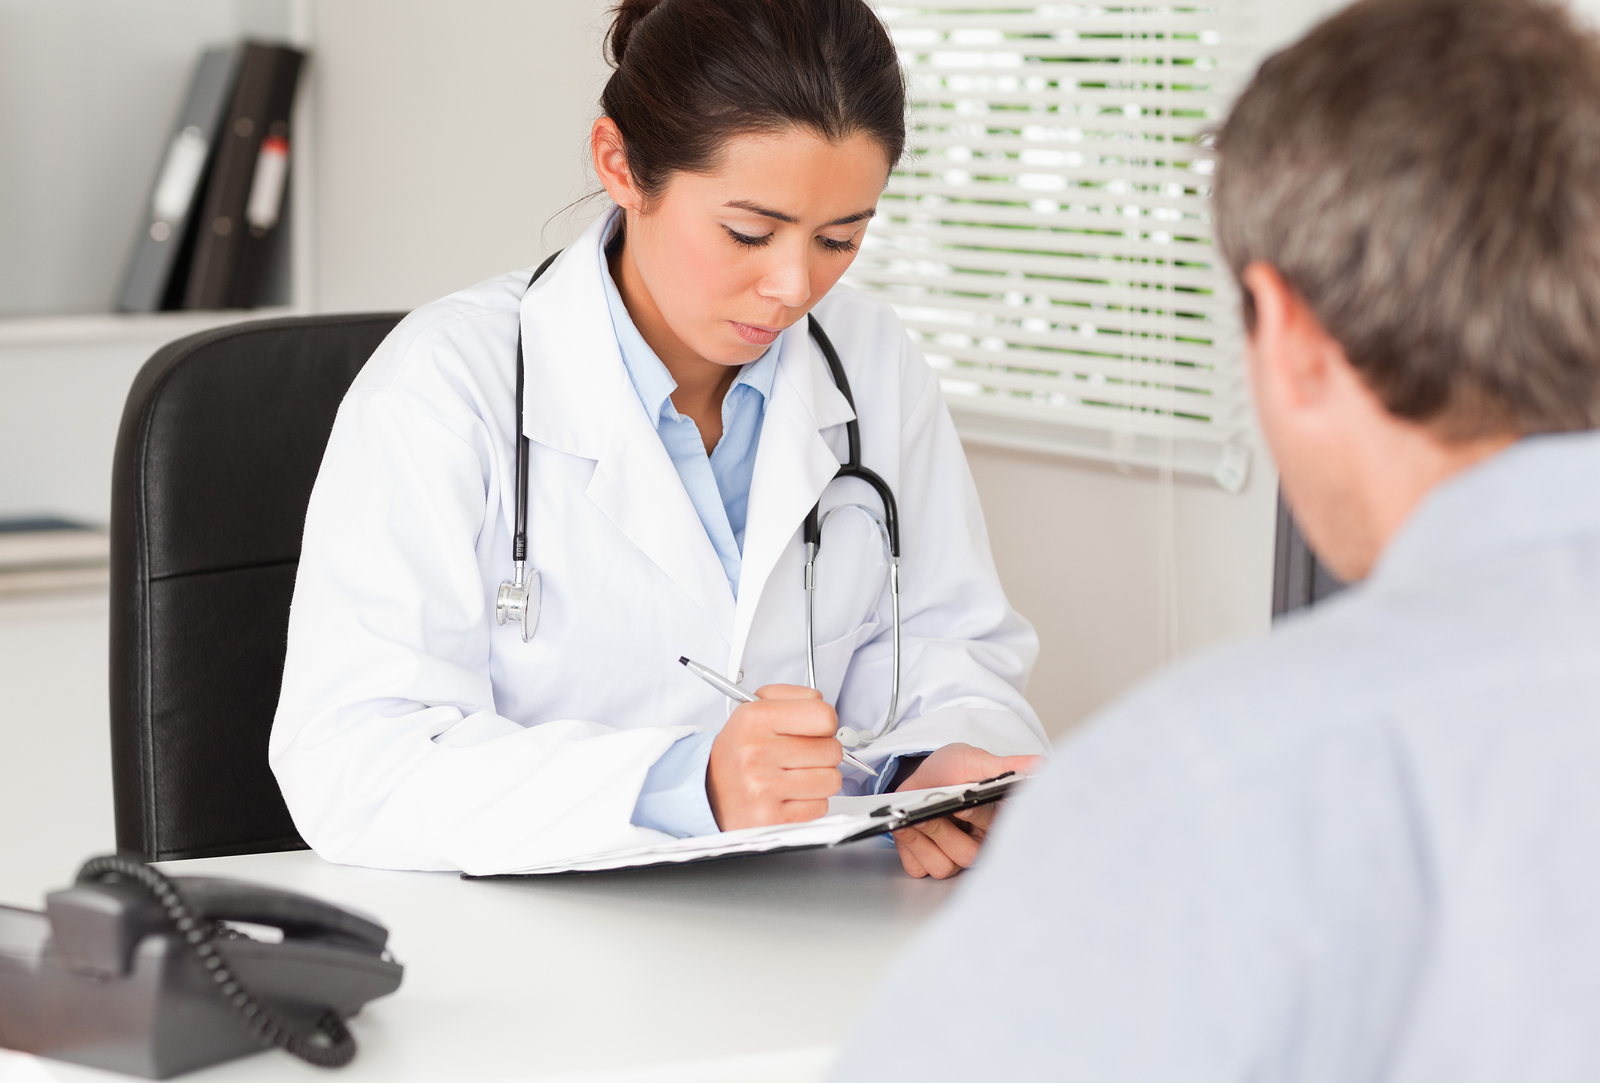 bigstock-Pretty-Female-Doctor-Consultin-21974384